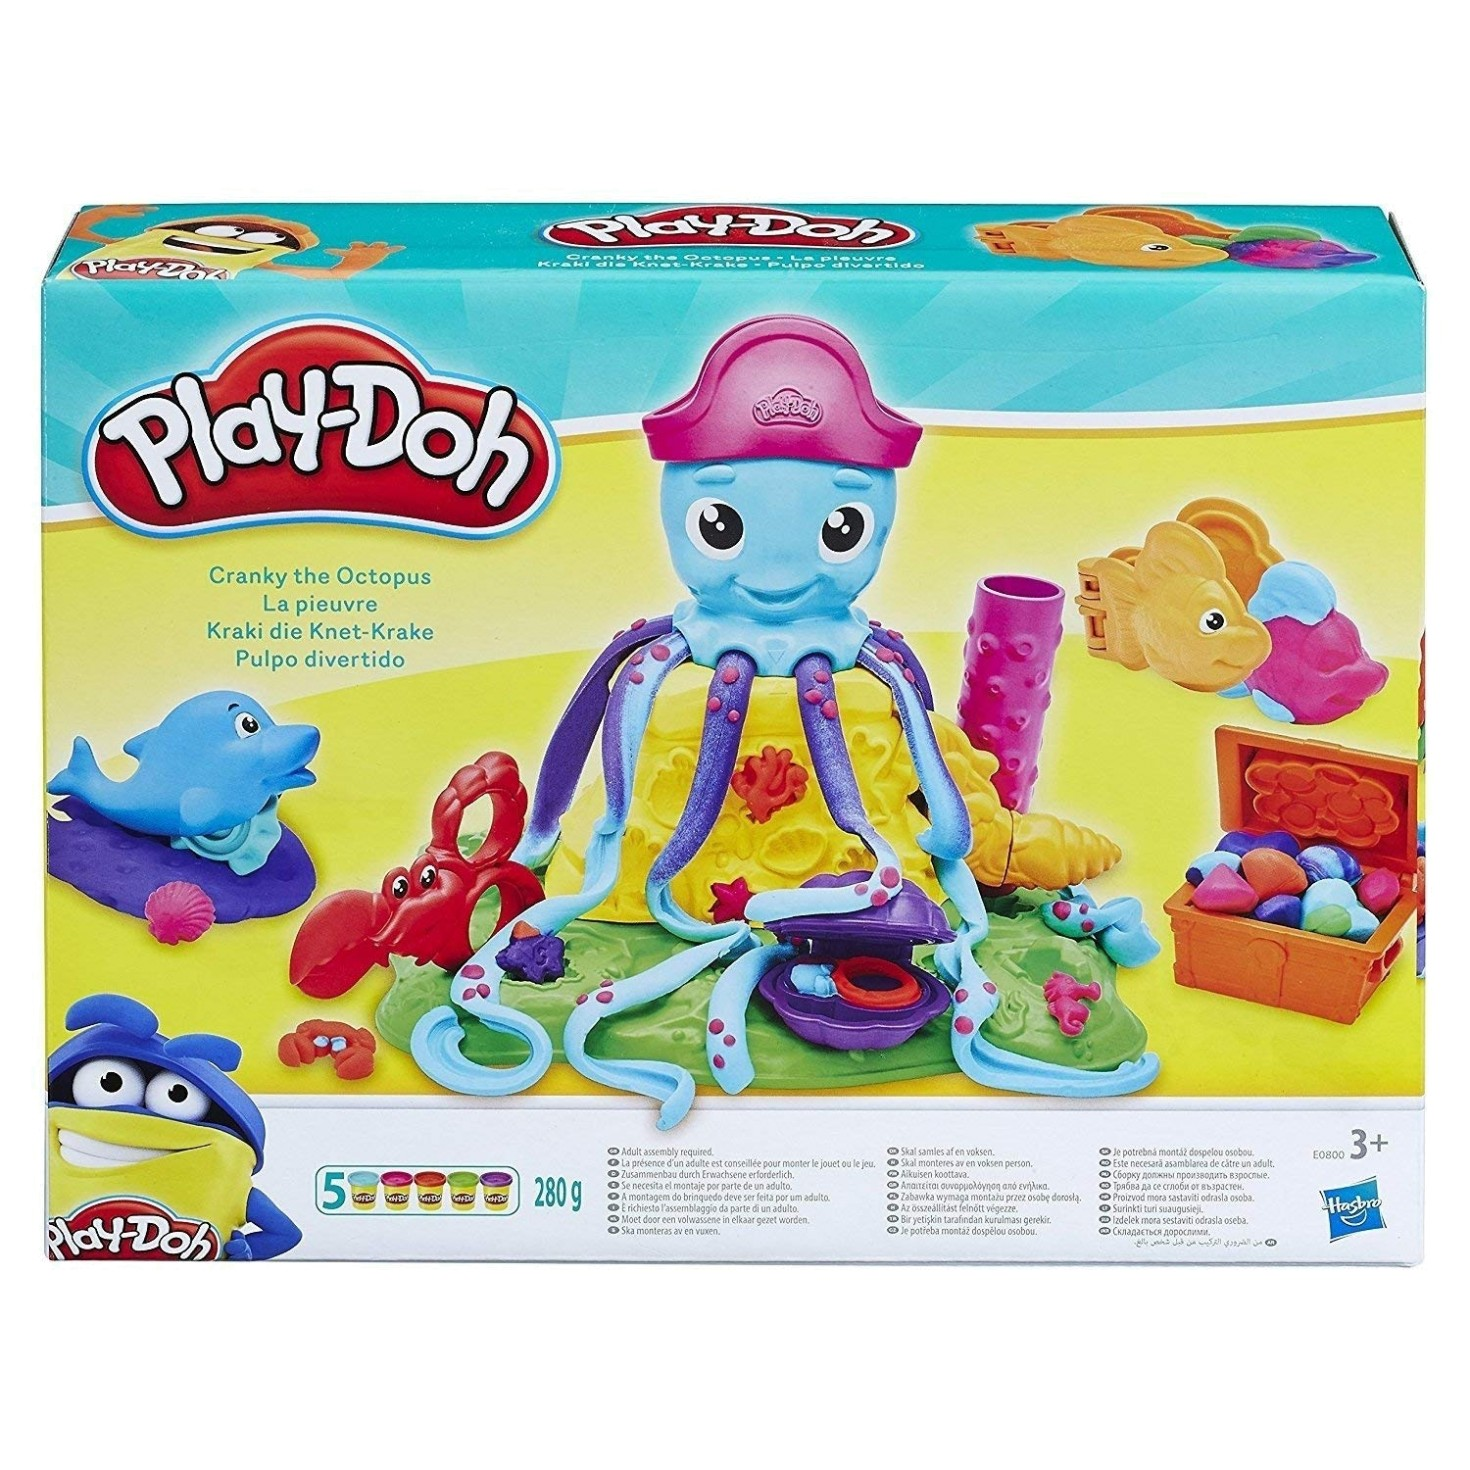 PLAY DOH CRANKY THE OCTUPUS